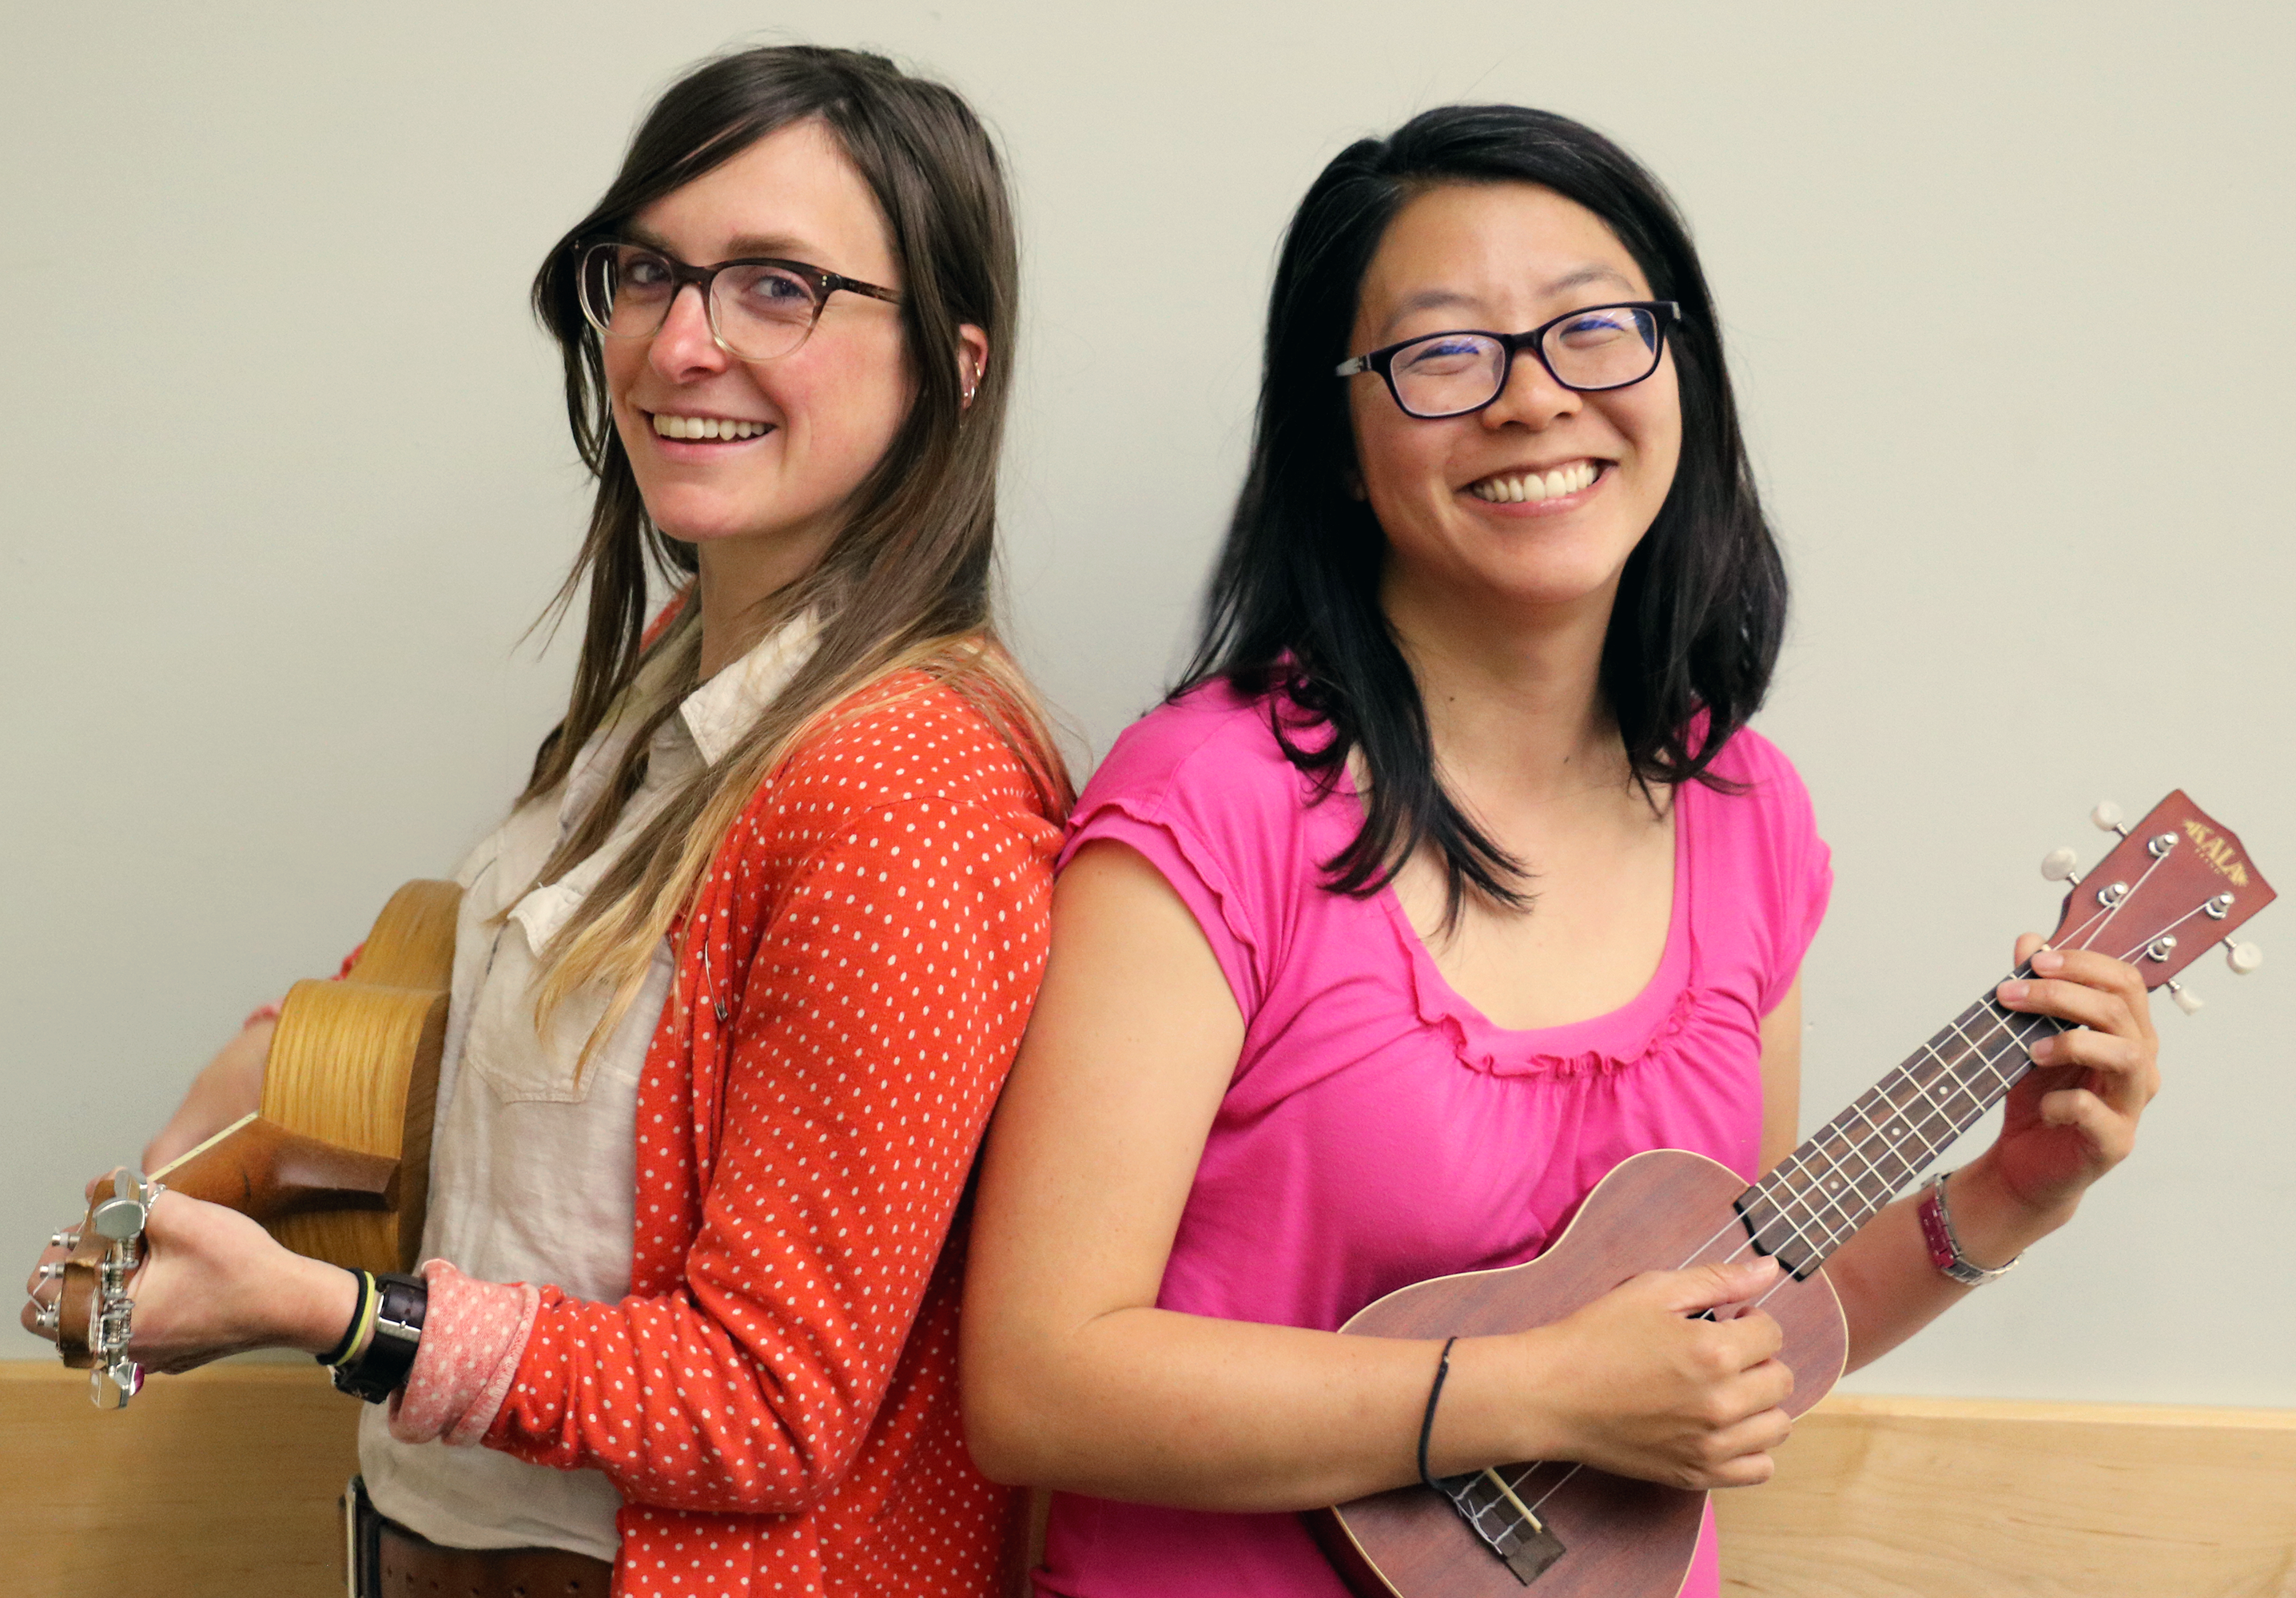 Library staff posing with our new ukuleles.